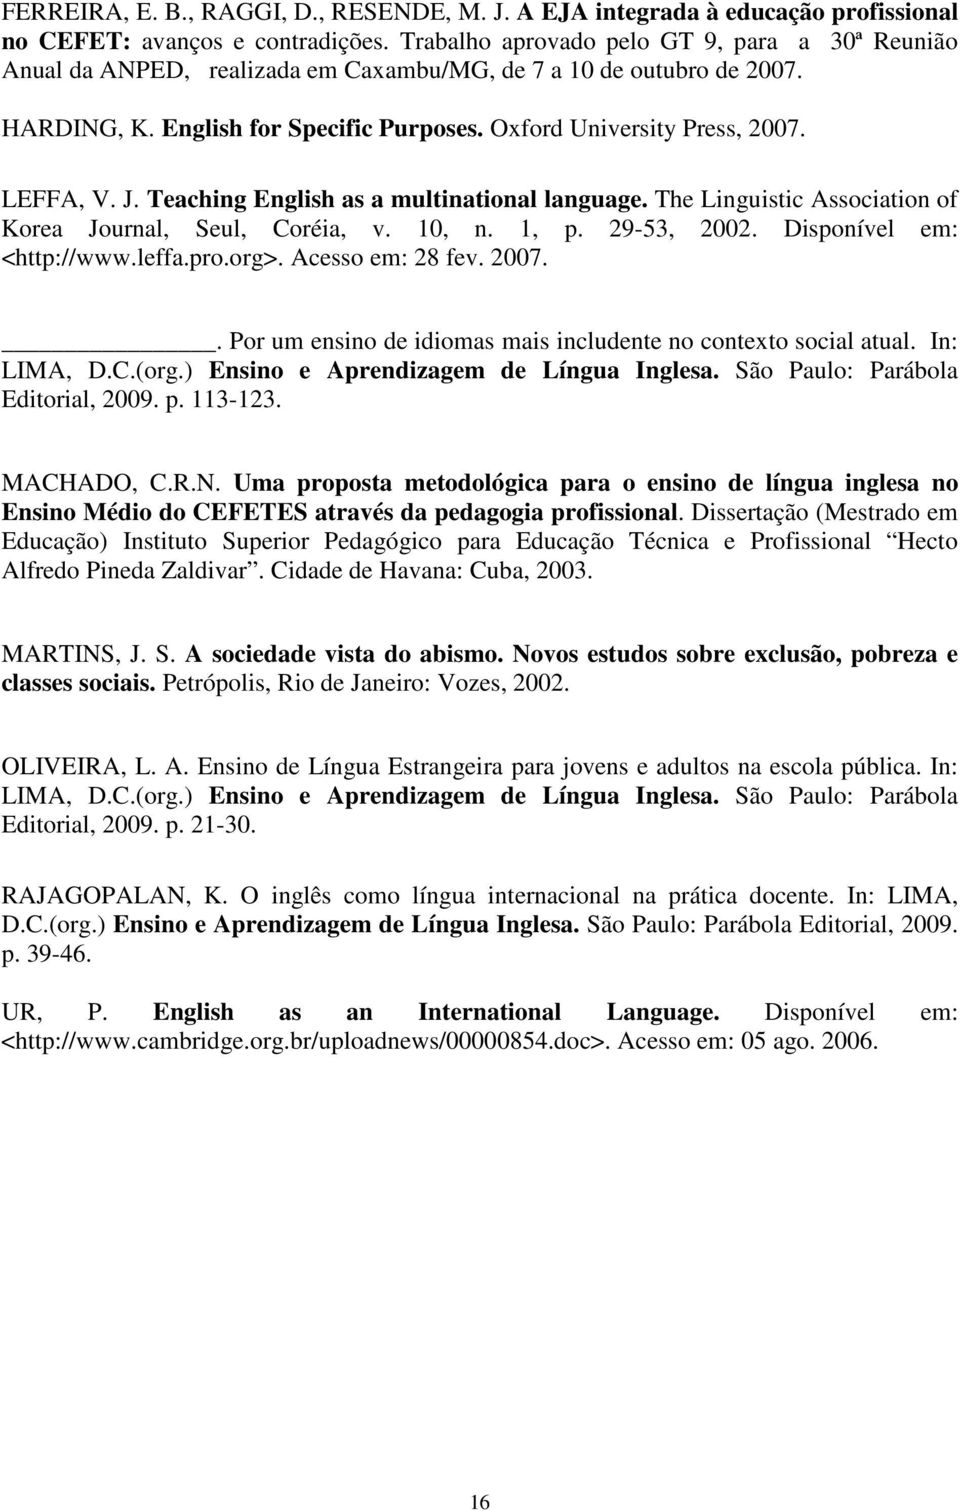 LEFFA, V. J. Teaching English as a multinational language. The Linguistic Association of Korea Journal, Seul, Coréia, v. 10, n. 1, p. 29-53, 2002. Disponível em: <http://www.leffa.pro.org>.